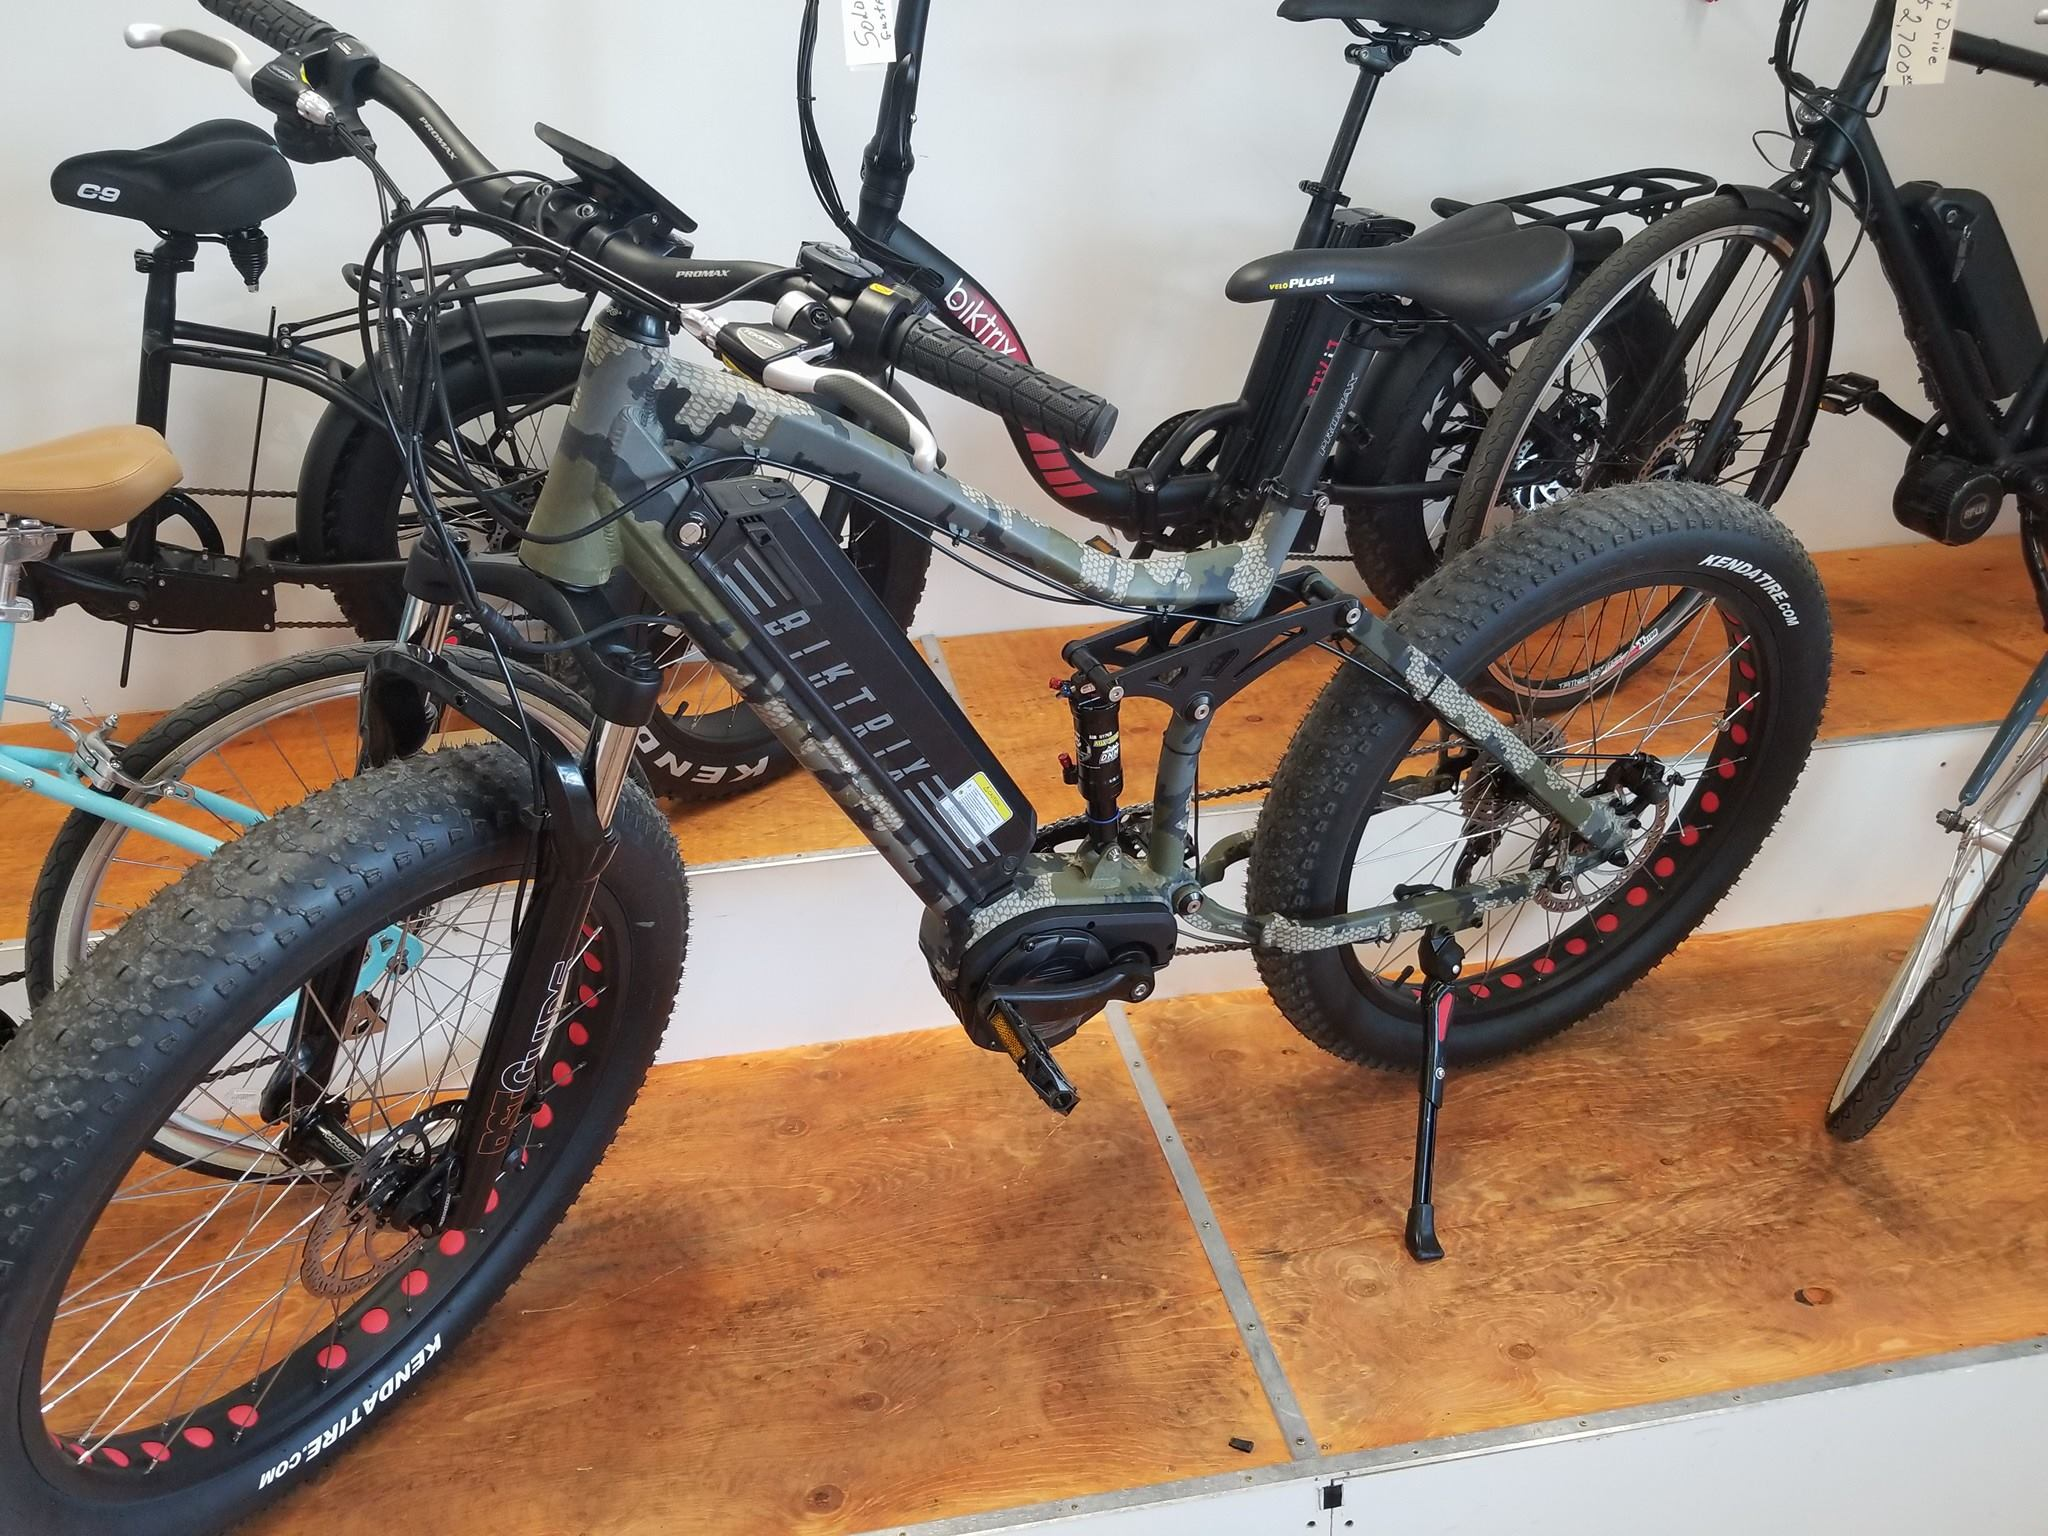 4828c6b2af3 On & Offroader suitable for hunting | Electric Bike Forum - Q&A ...